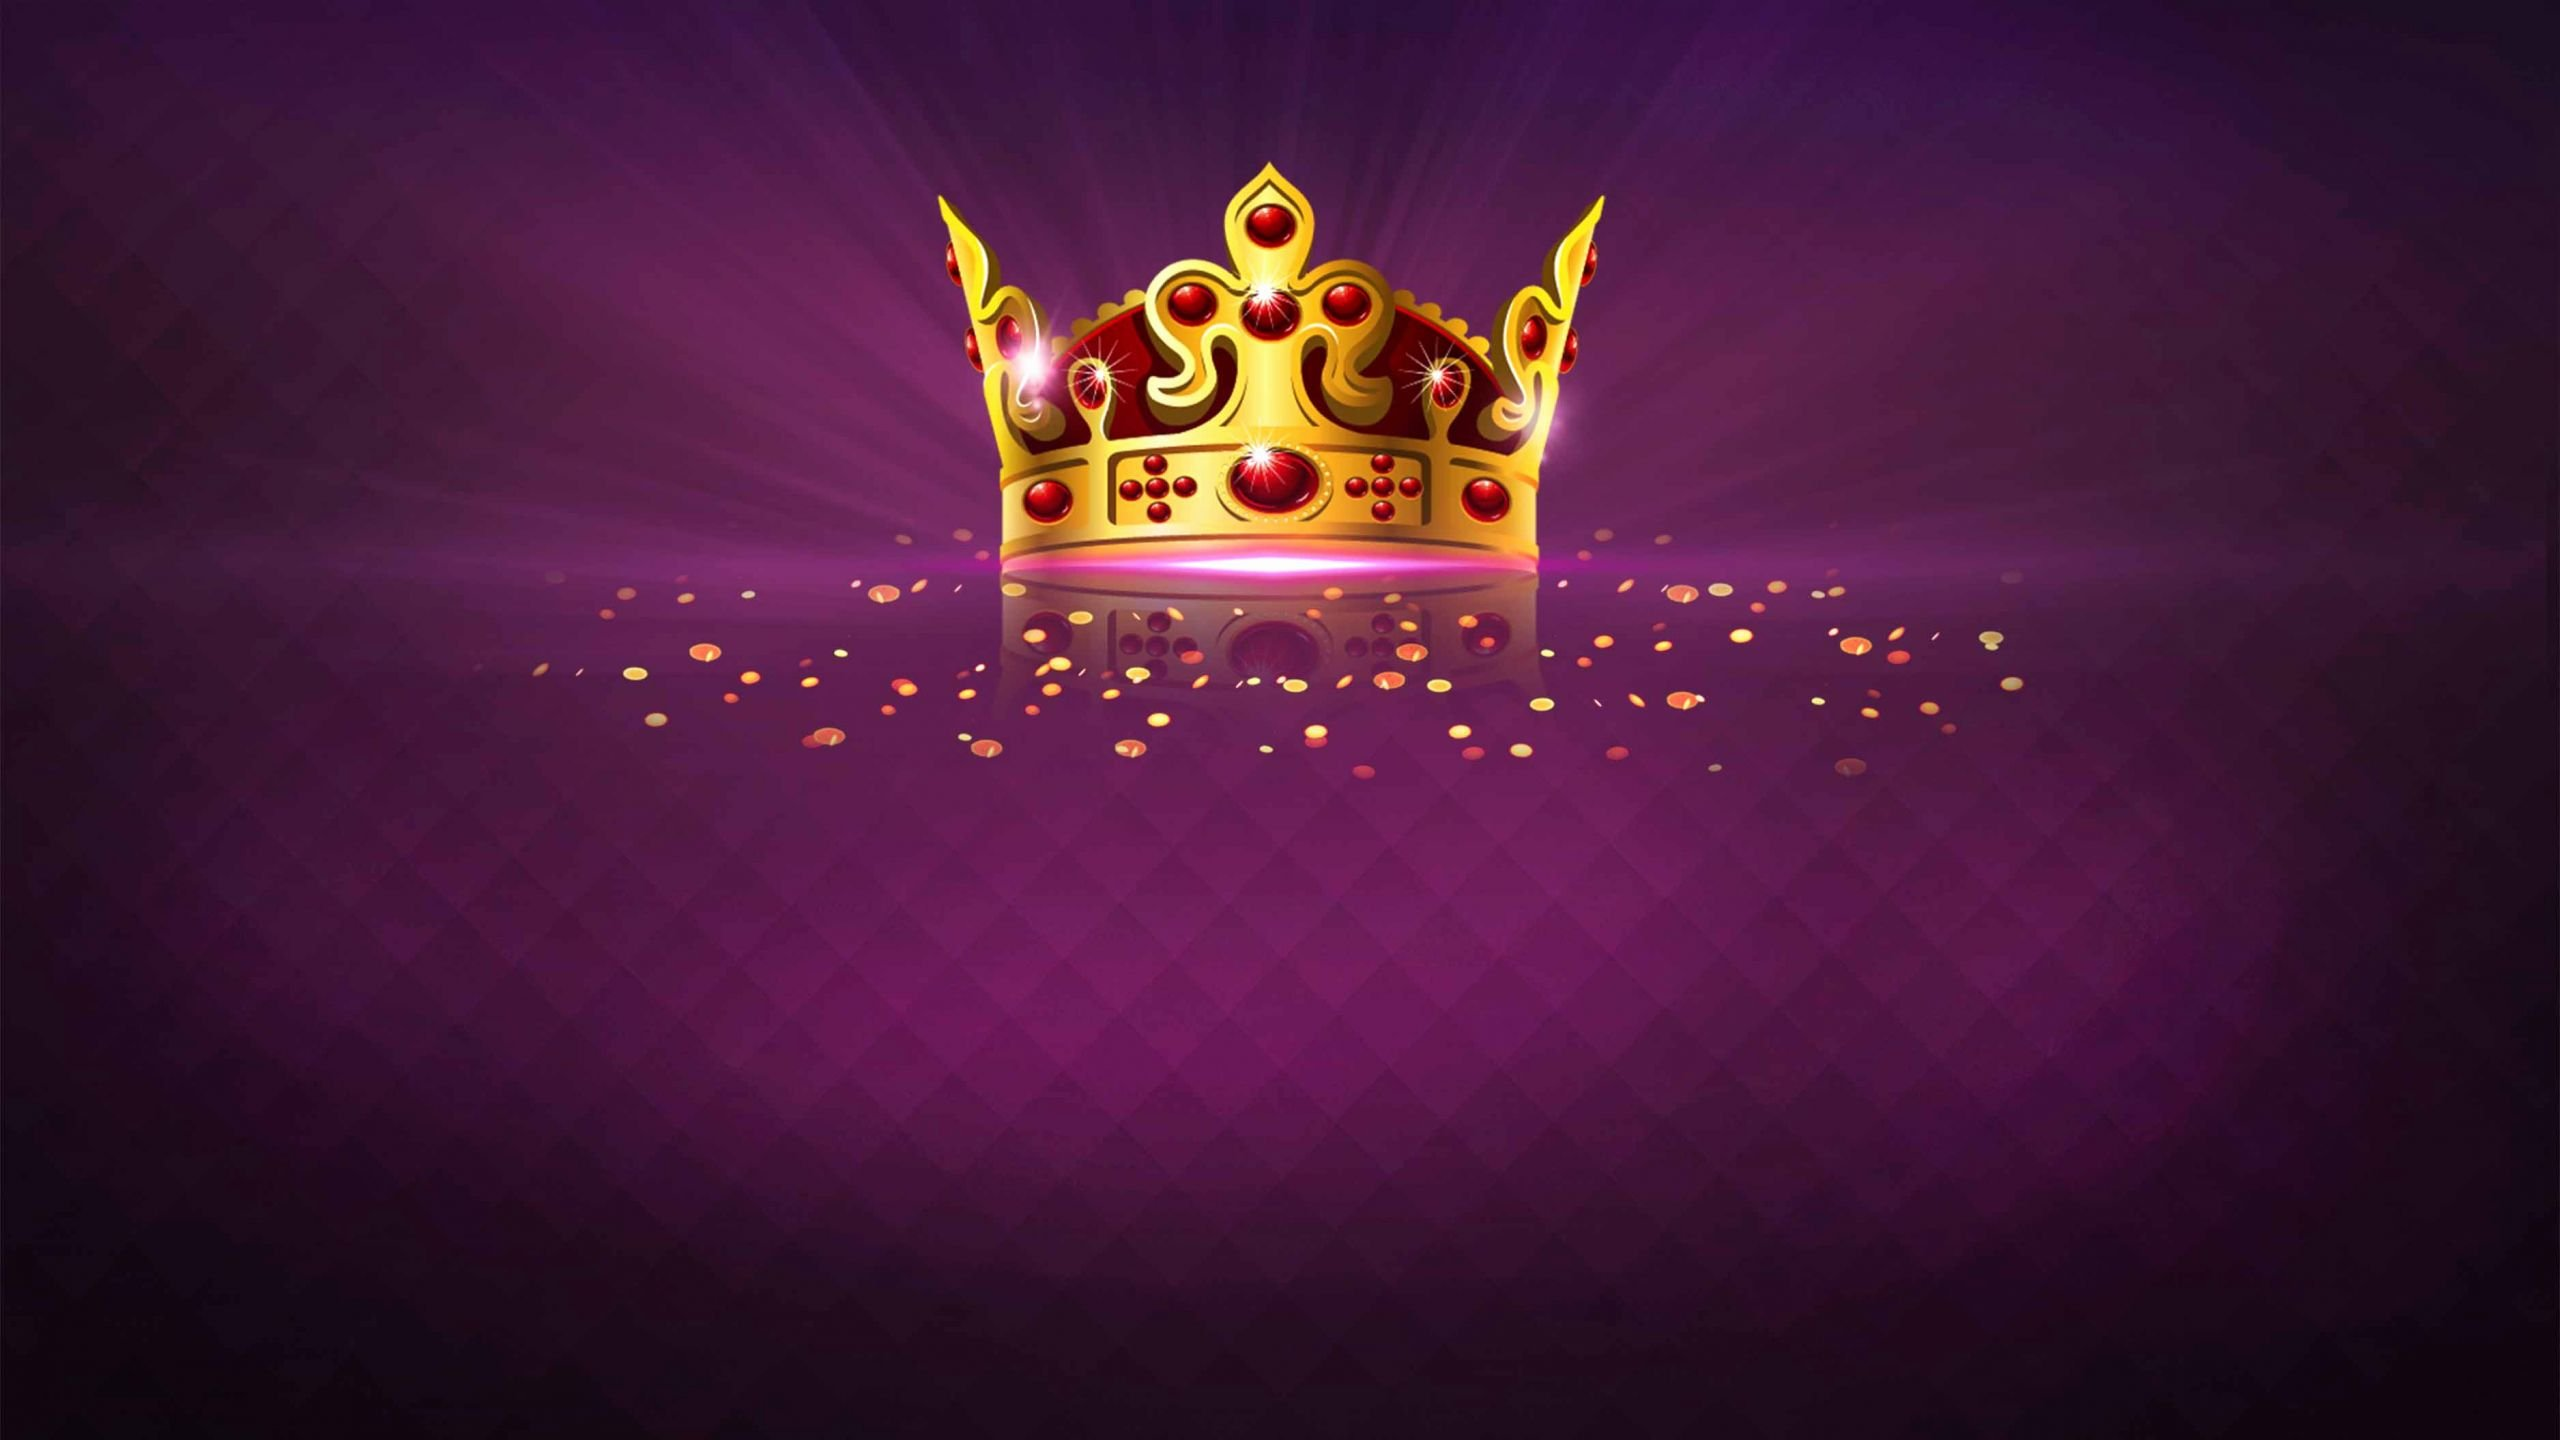 Purple Heart Certificate Template Inspirational Crown Coronation Purple Poster Background Material Purple